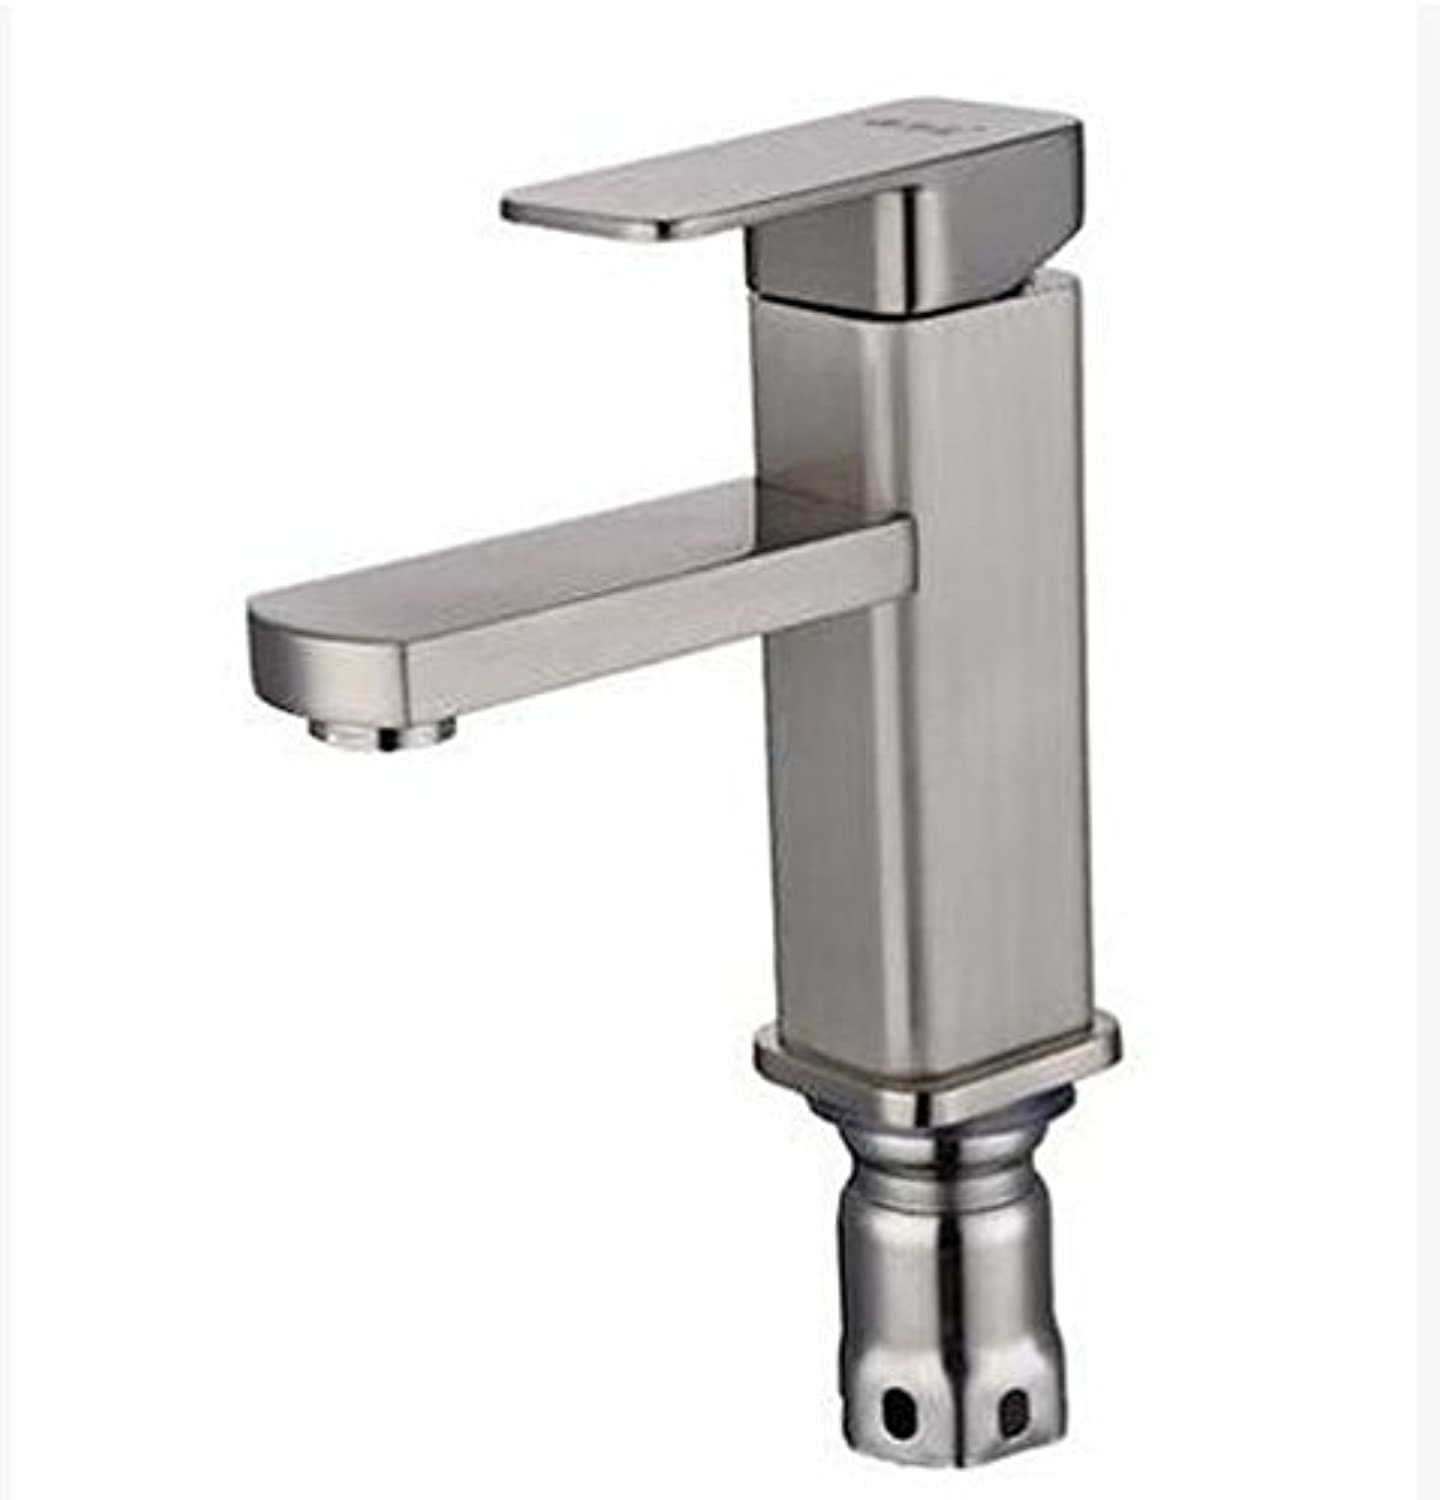 SunZIThe Xin Rui bathroom single hole copper cold washbasin faucet bathroom cabinet basin faucet ceramic basin,Stainless steel wire drawing square faucet (without pipe)